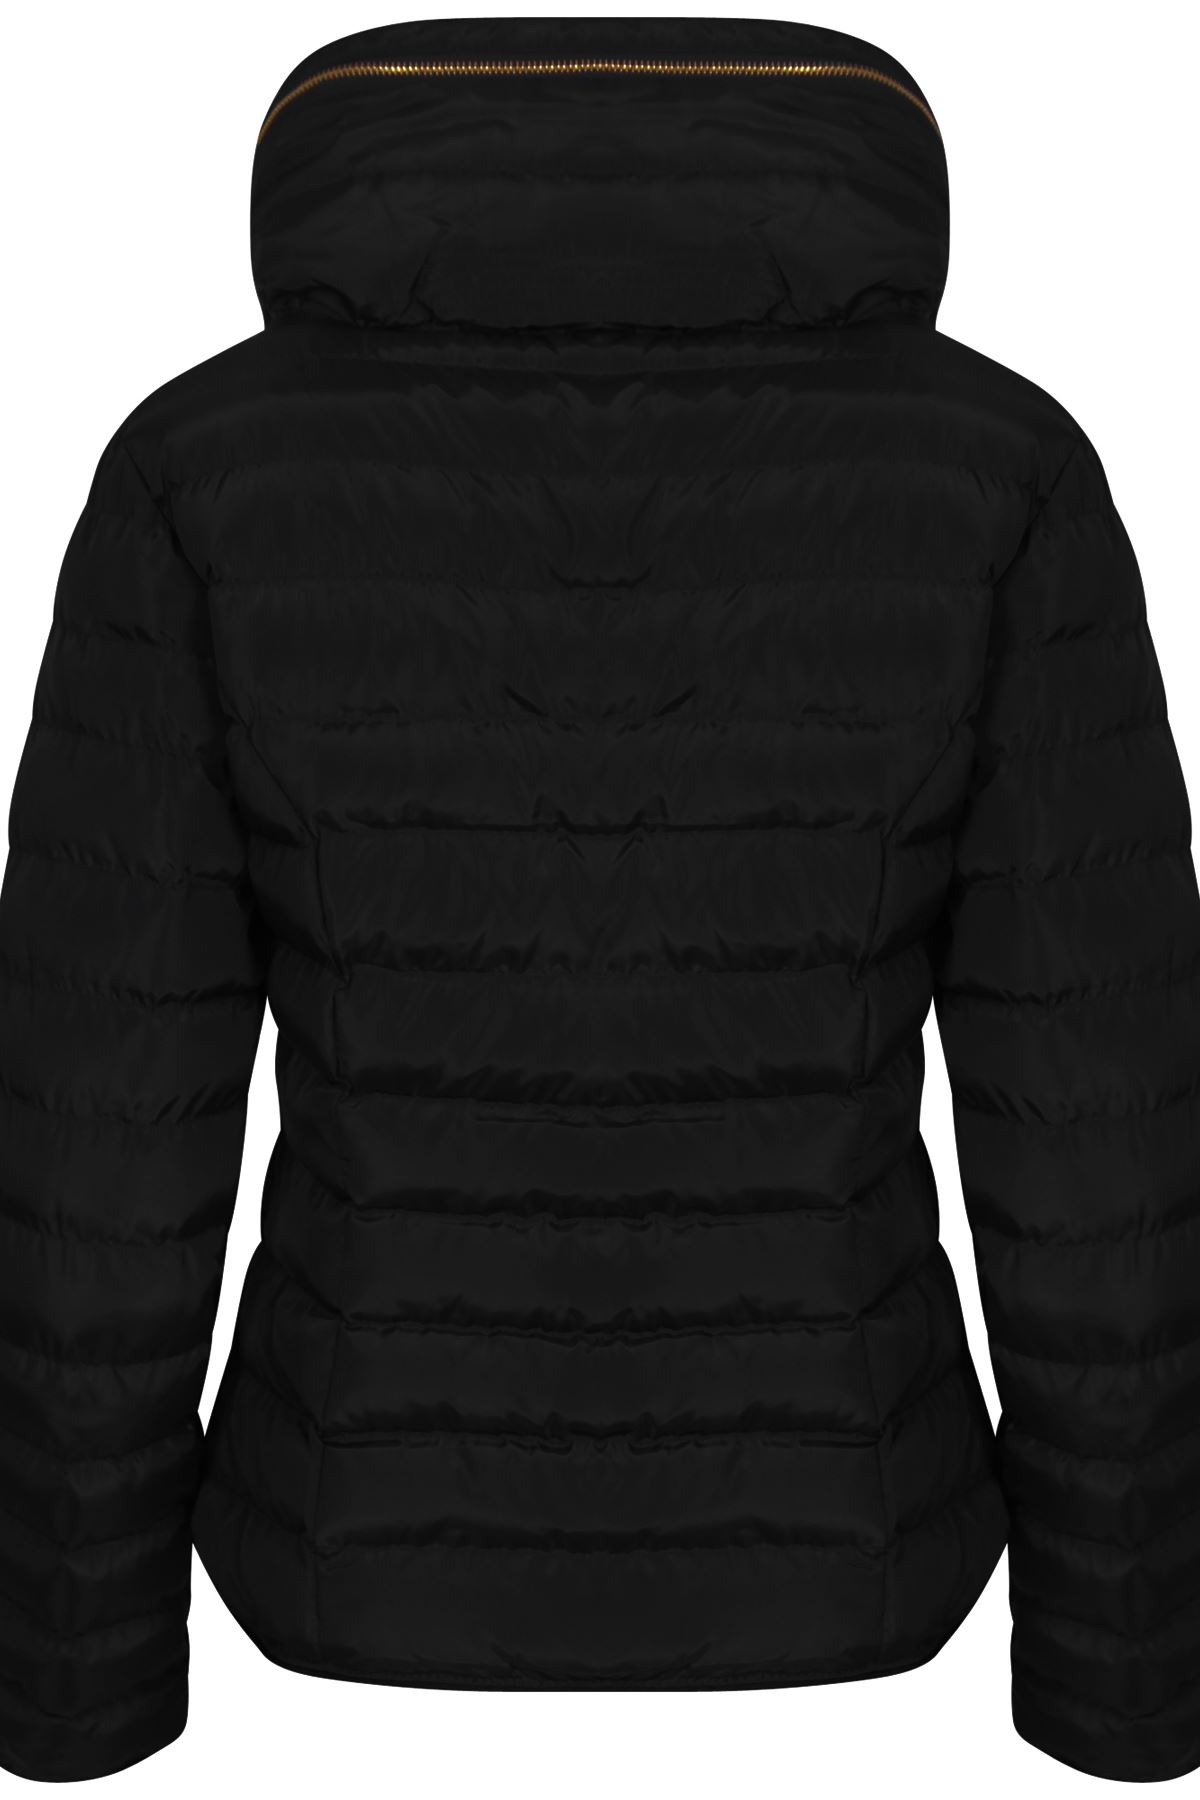 2f0063ee2ba9e Womens Wine With Thick Coat Padded Jacket Warm Zip Quilted Black ...